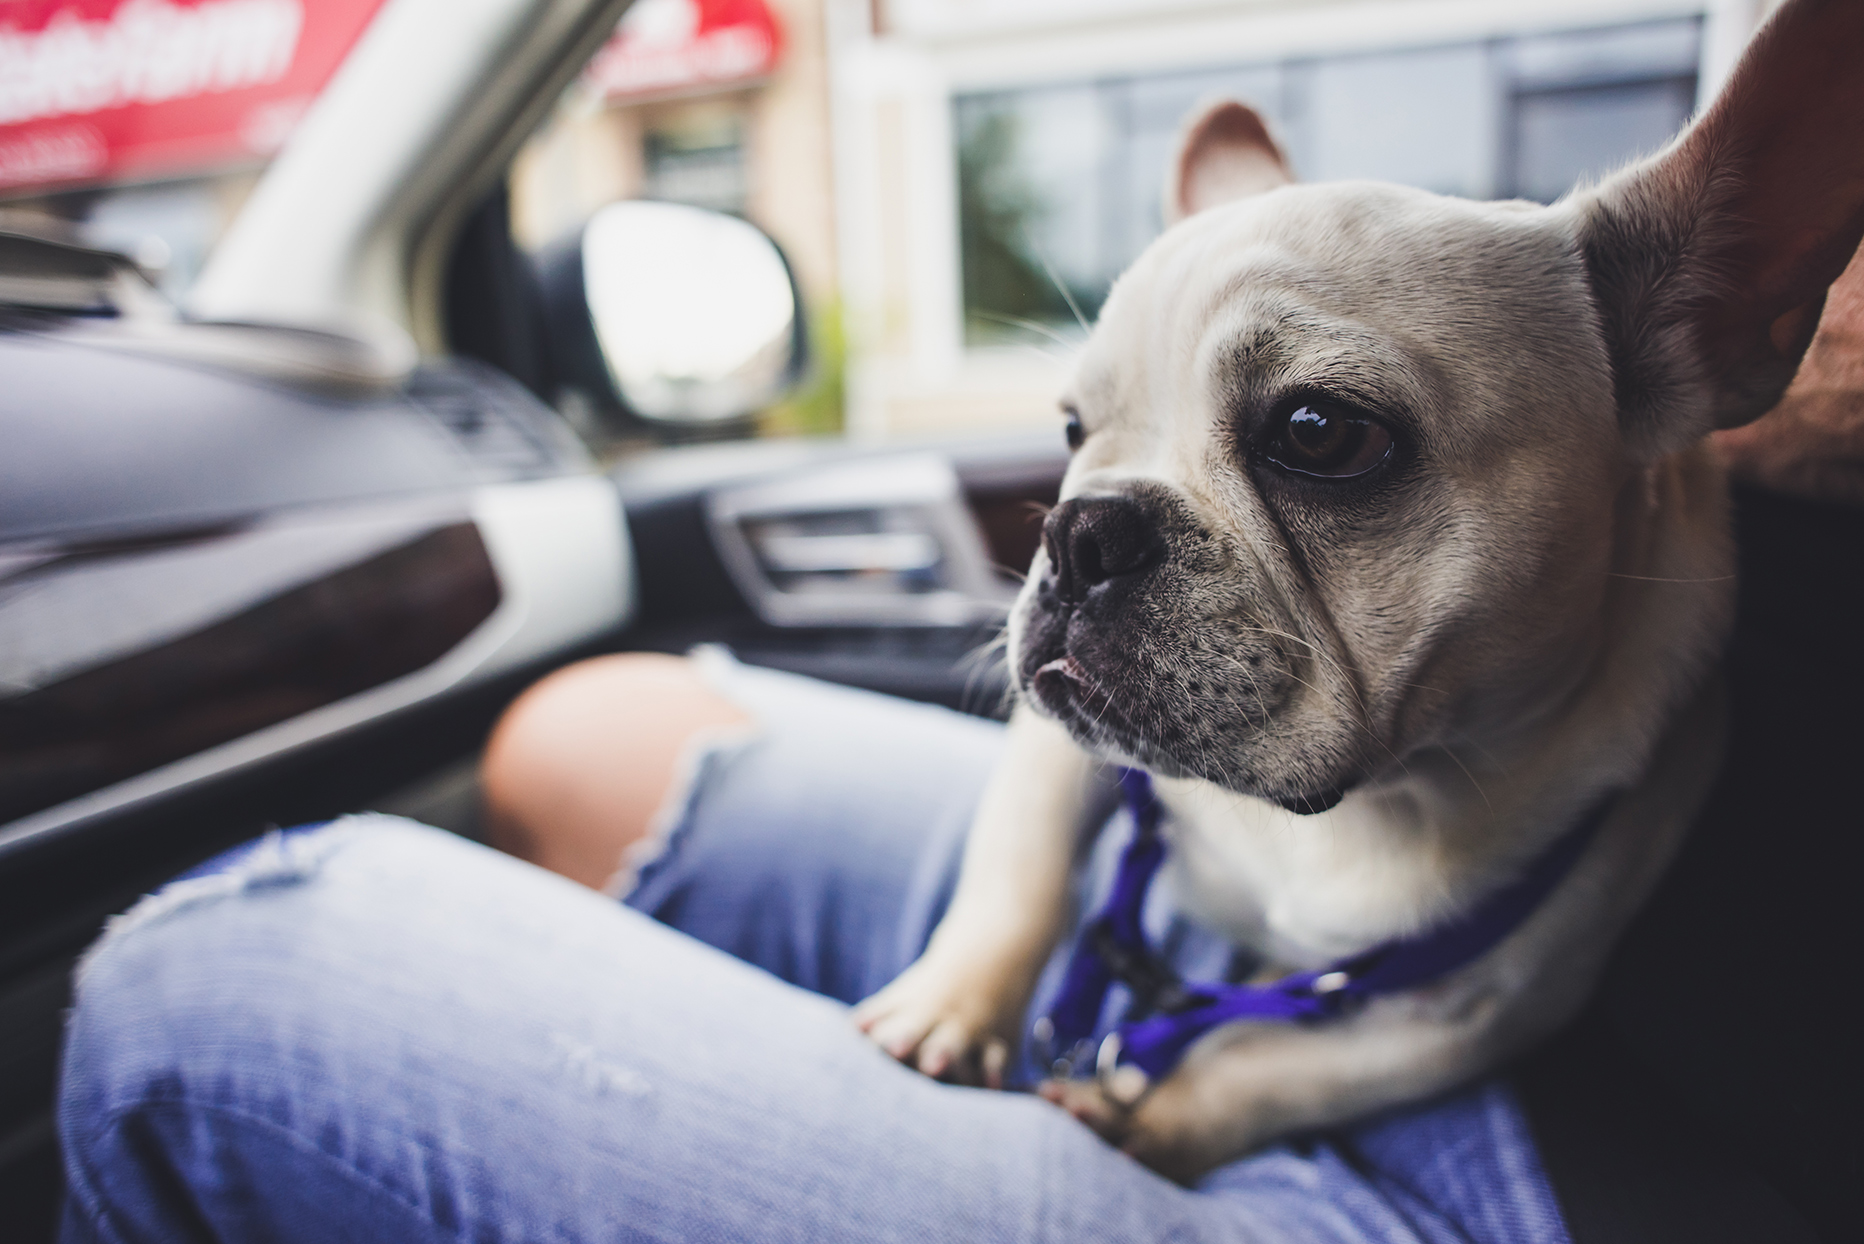 dog on lap of person inside car